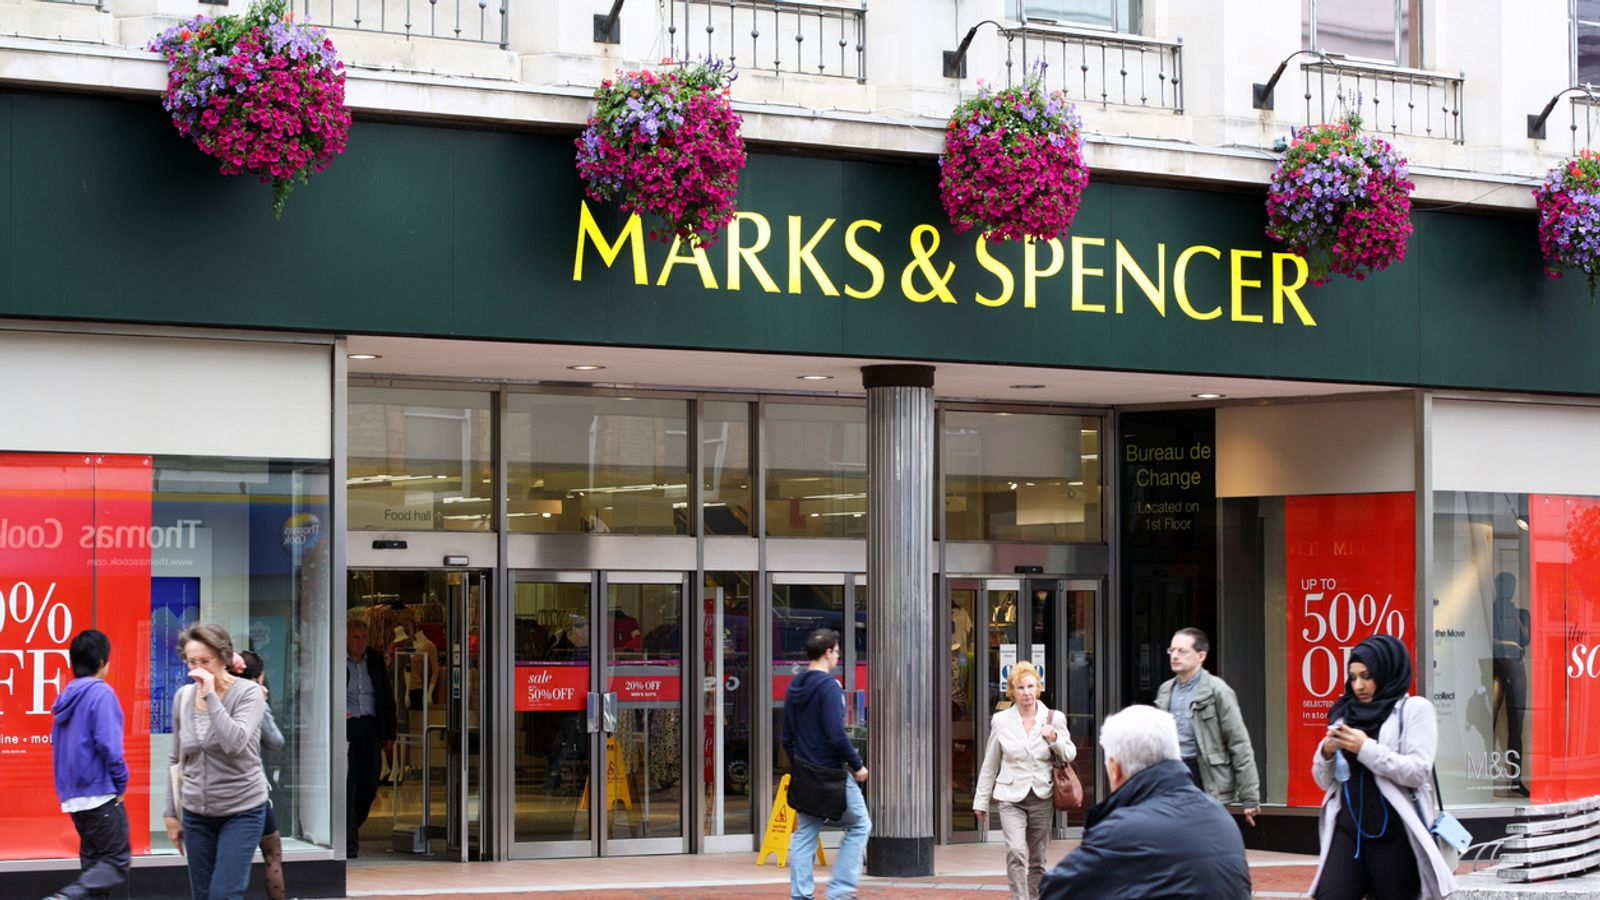 marks and spencer - photo #20